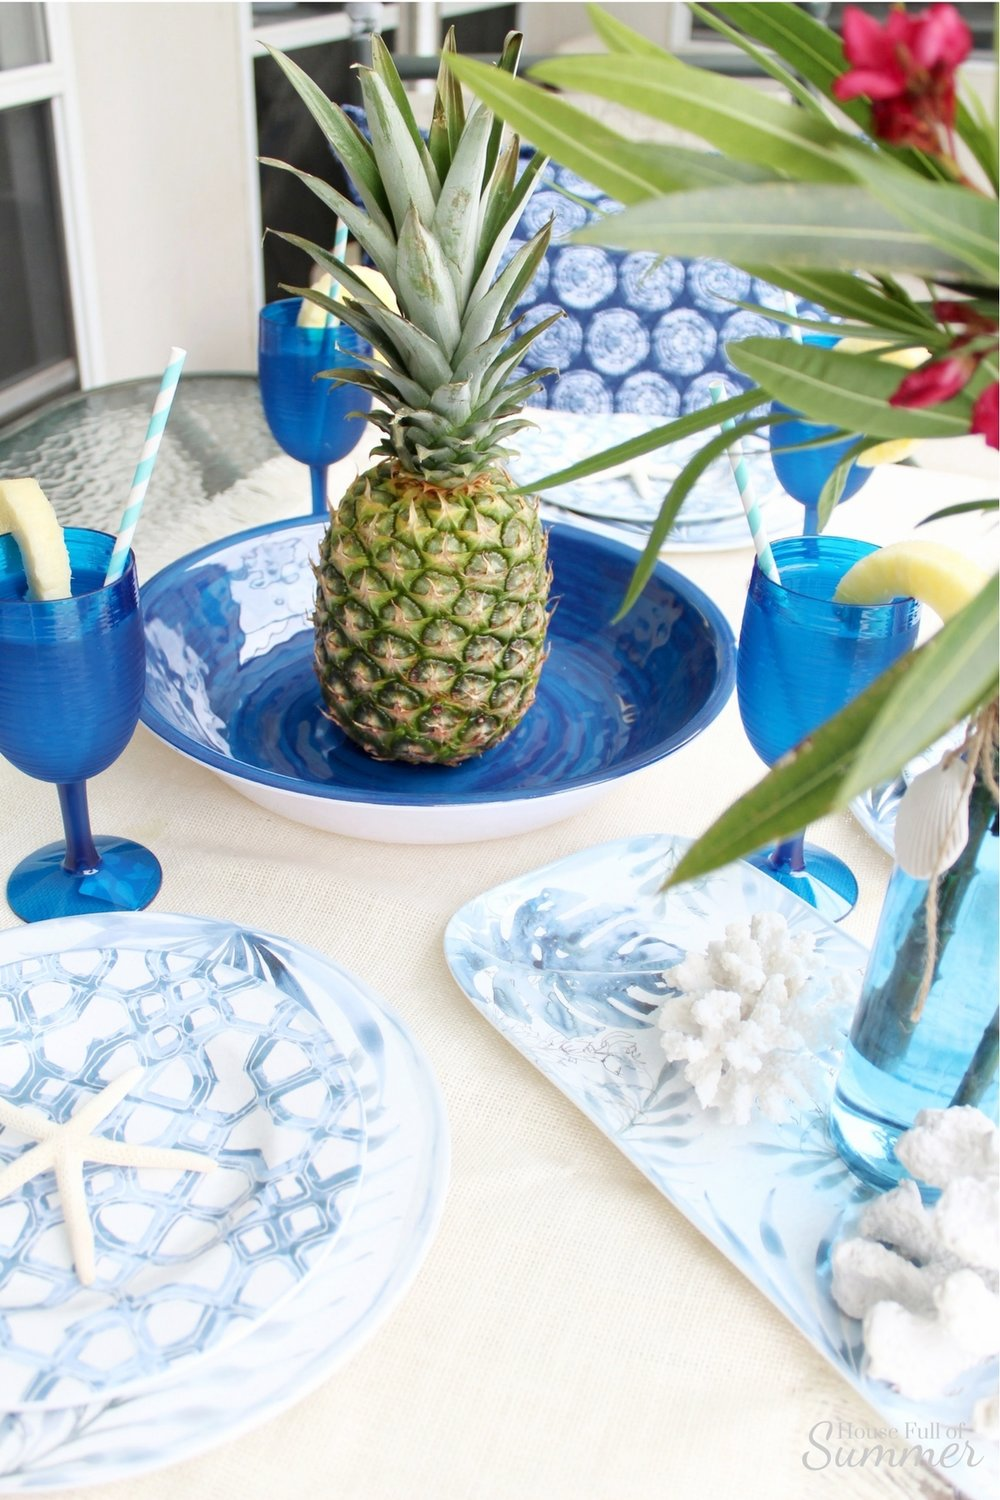 Blue Palms & Pineapples Outdoor Tablescape | House Full of Summer partnership with Christmas Tree Shops andThat! Coastal Living line, outdoor entertaining, poolside dining, plasticware, melamine, tropical dishes, chinoiserie chic, patio decor, coastal tablescape, blue and white table setting, pineapple cocktail, plastic blue wine glasses, navy and white decor, Florida home living #ad #Christmastreeshops